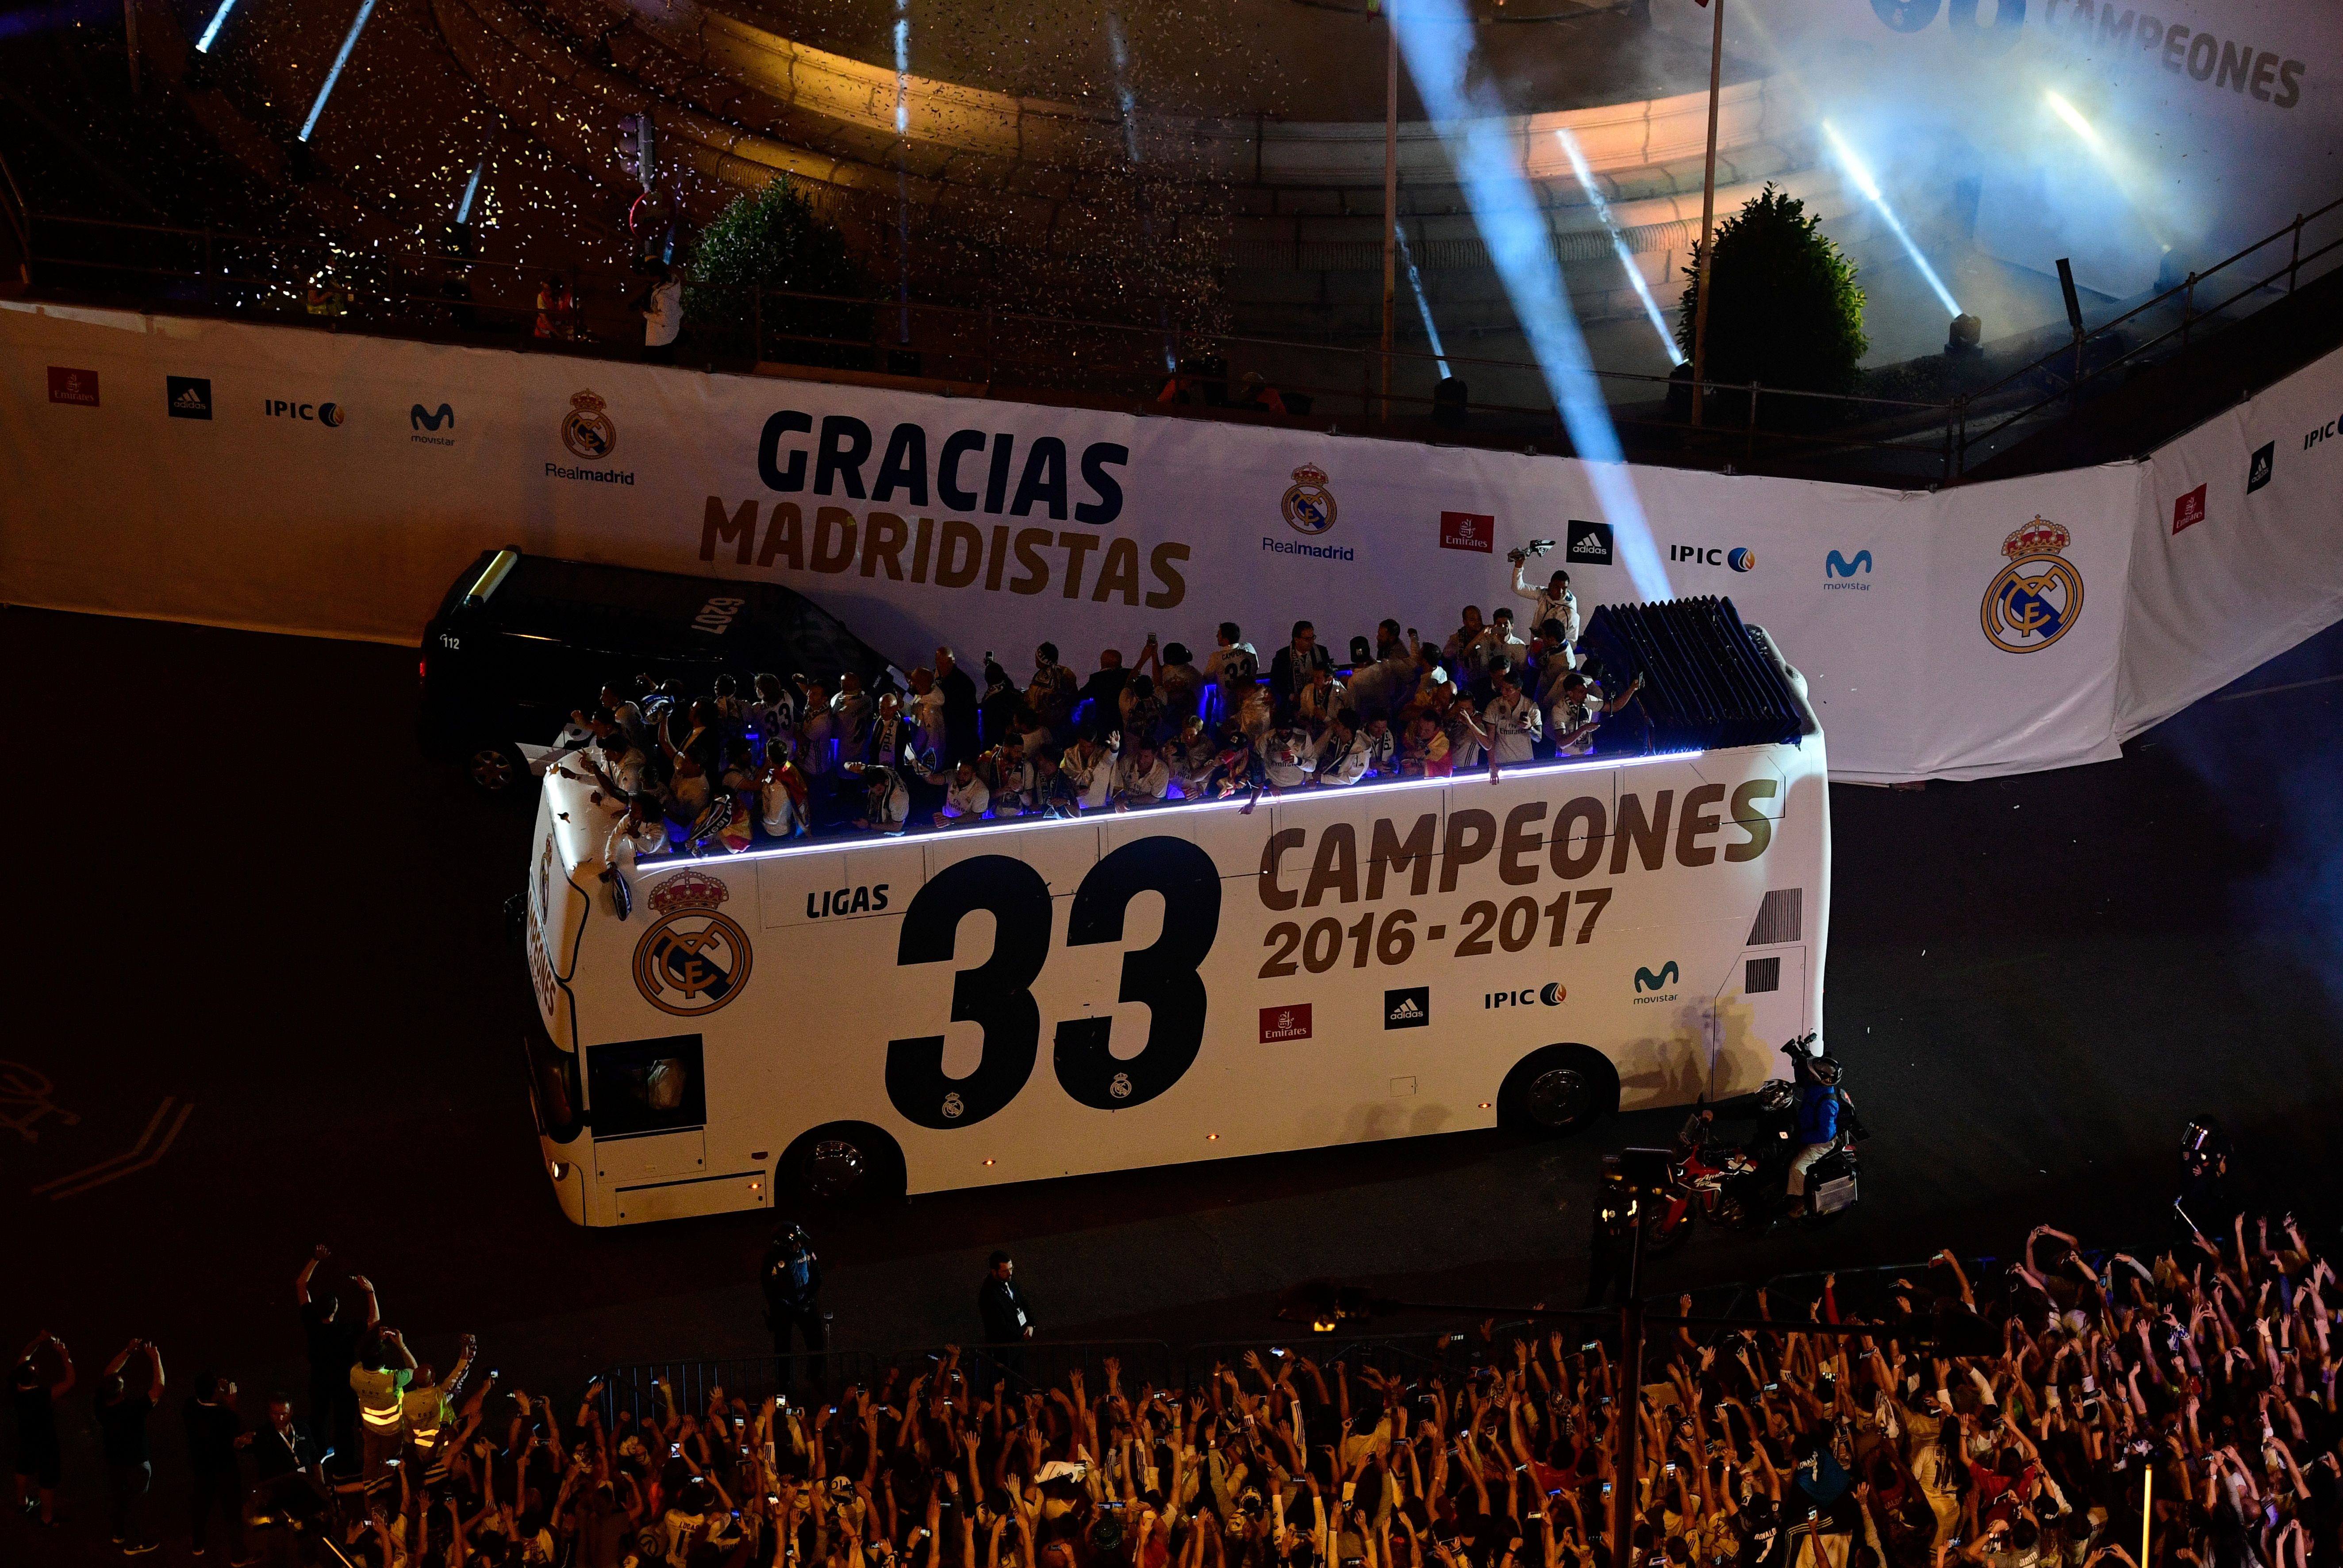 Real Madrid celebrate at the famous Plaza Cibeles.